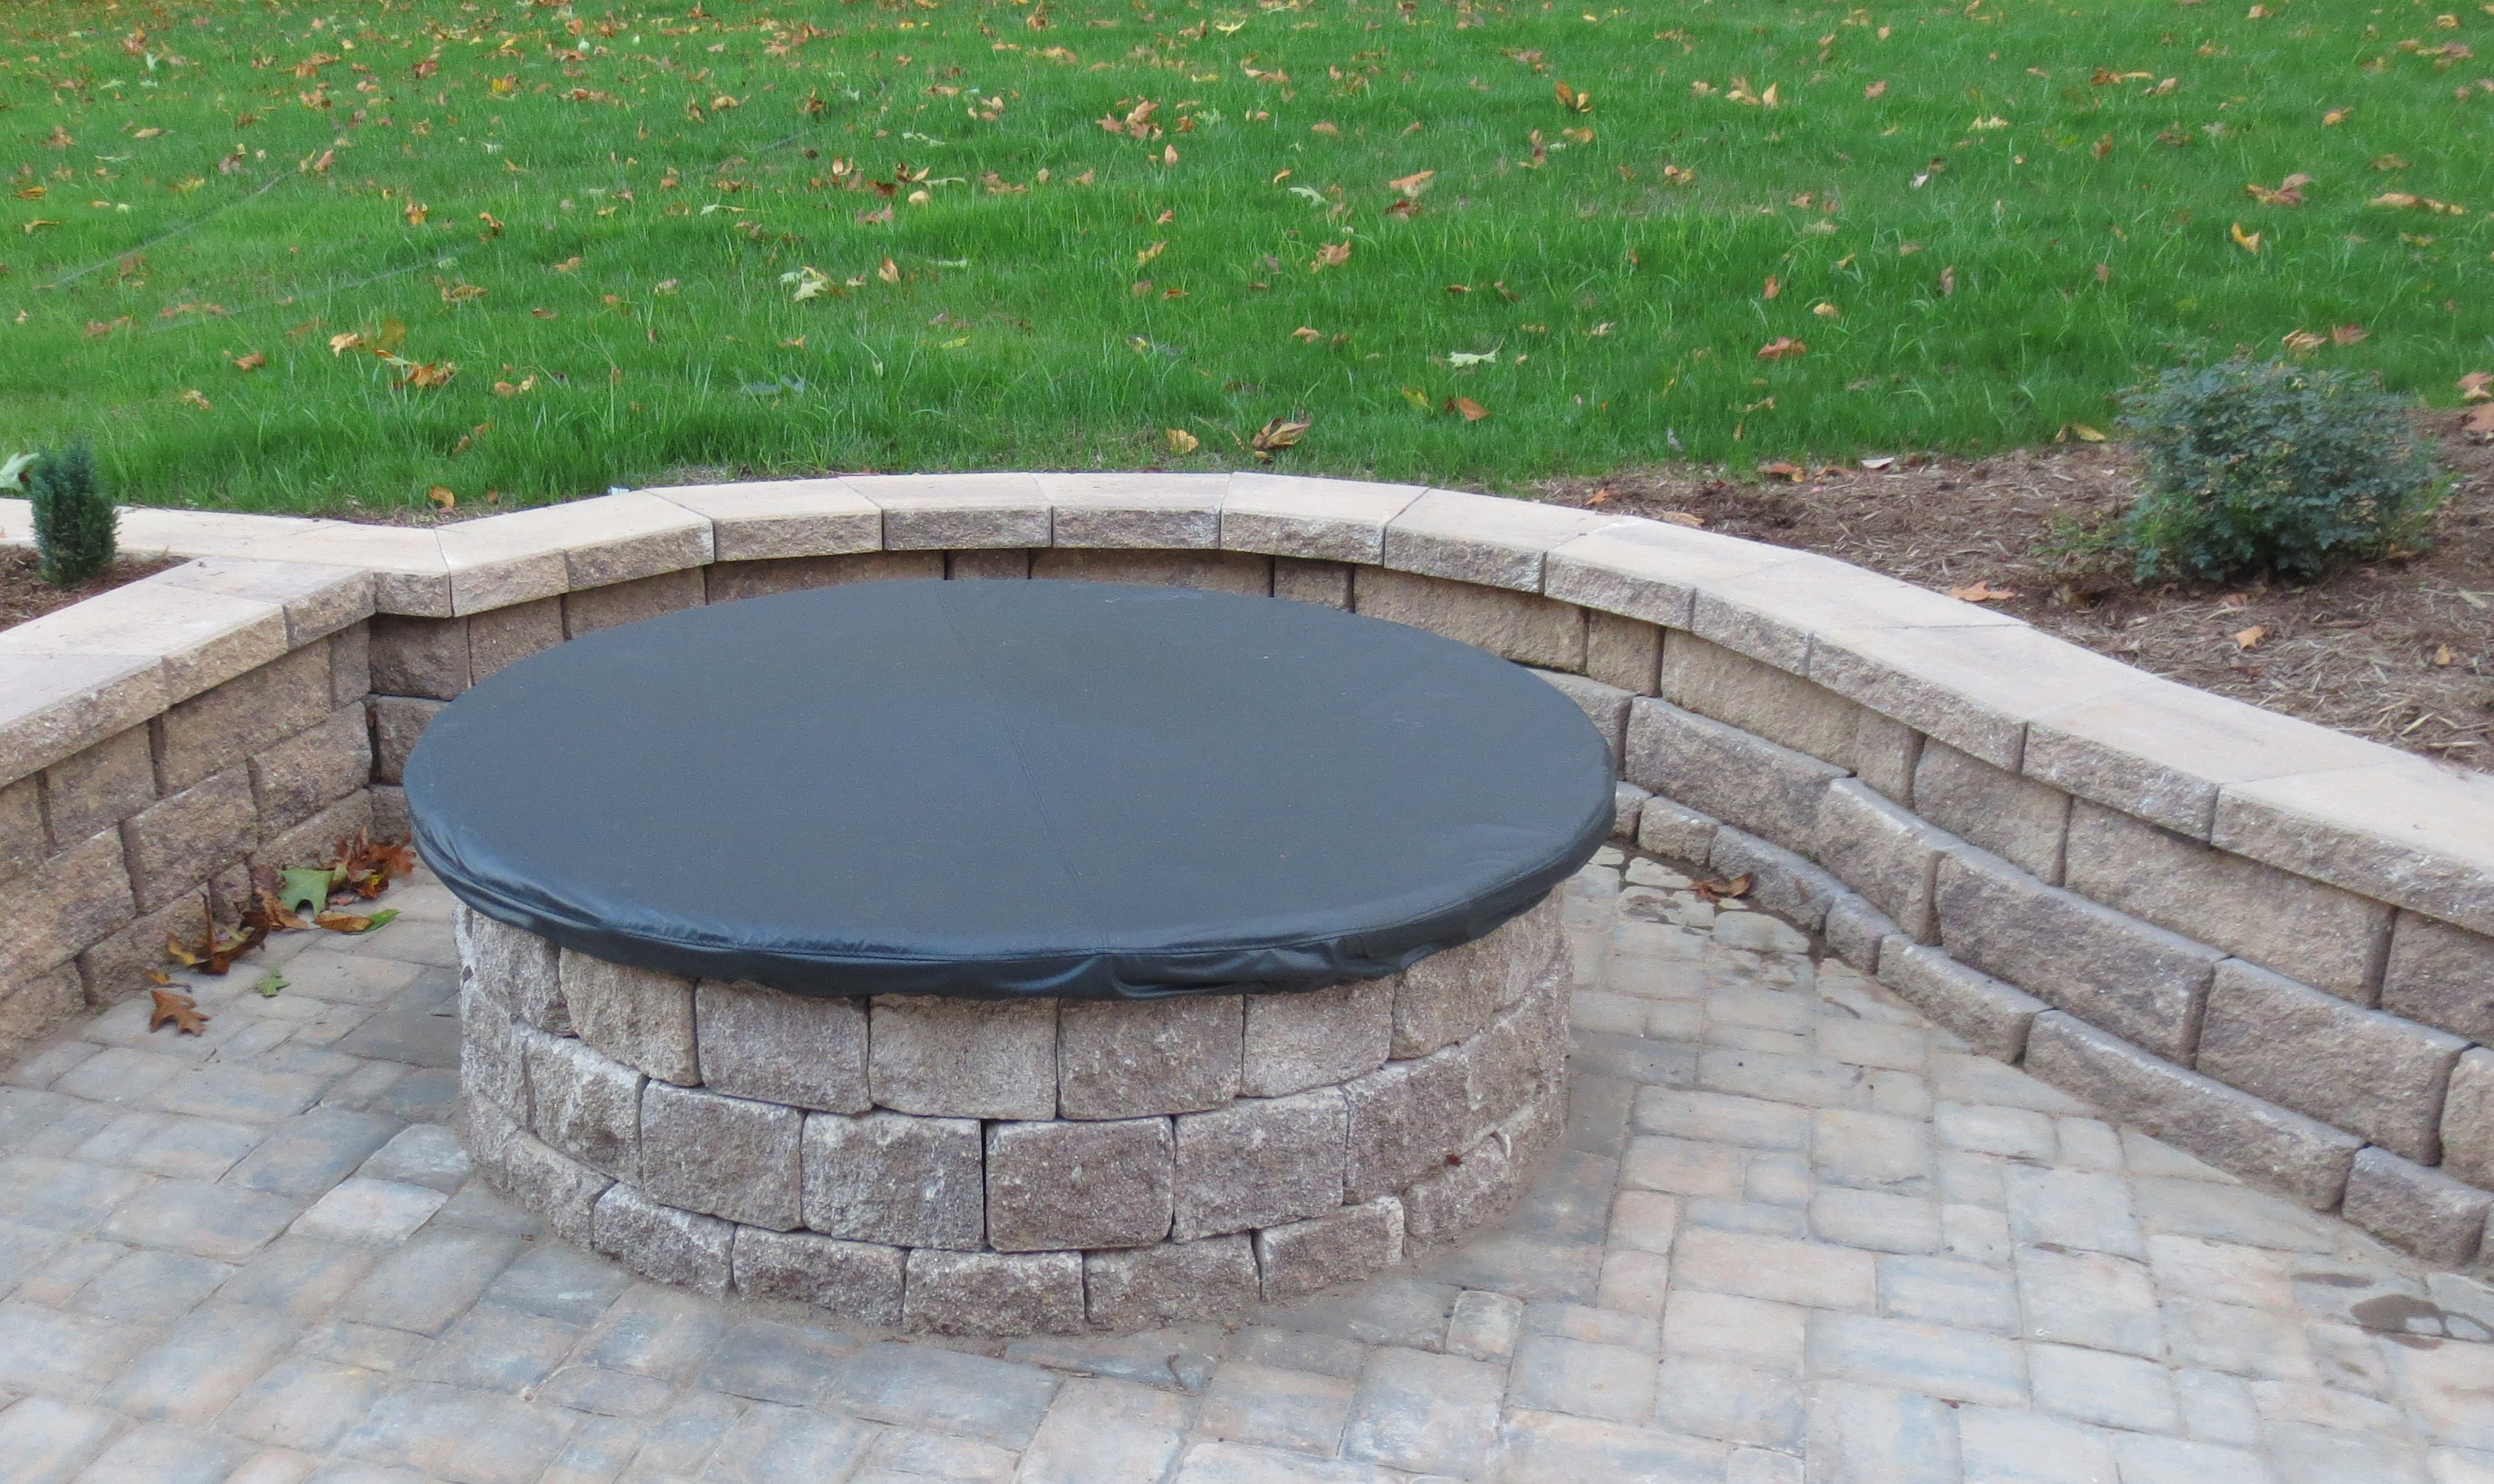 Metal Fire Pit Covers Round New Unique Round Fire Pit Cover Metal regarding sizing 3377 X 2010